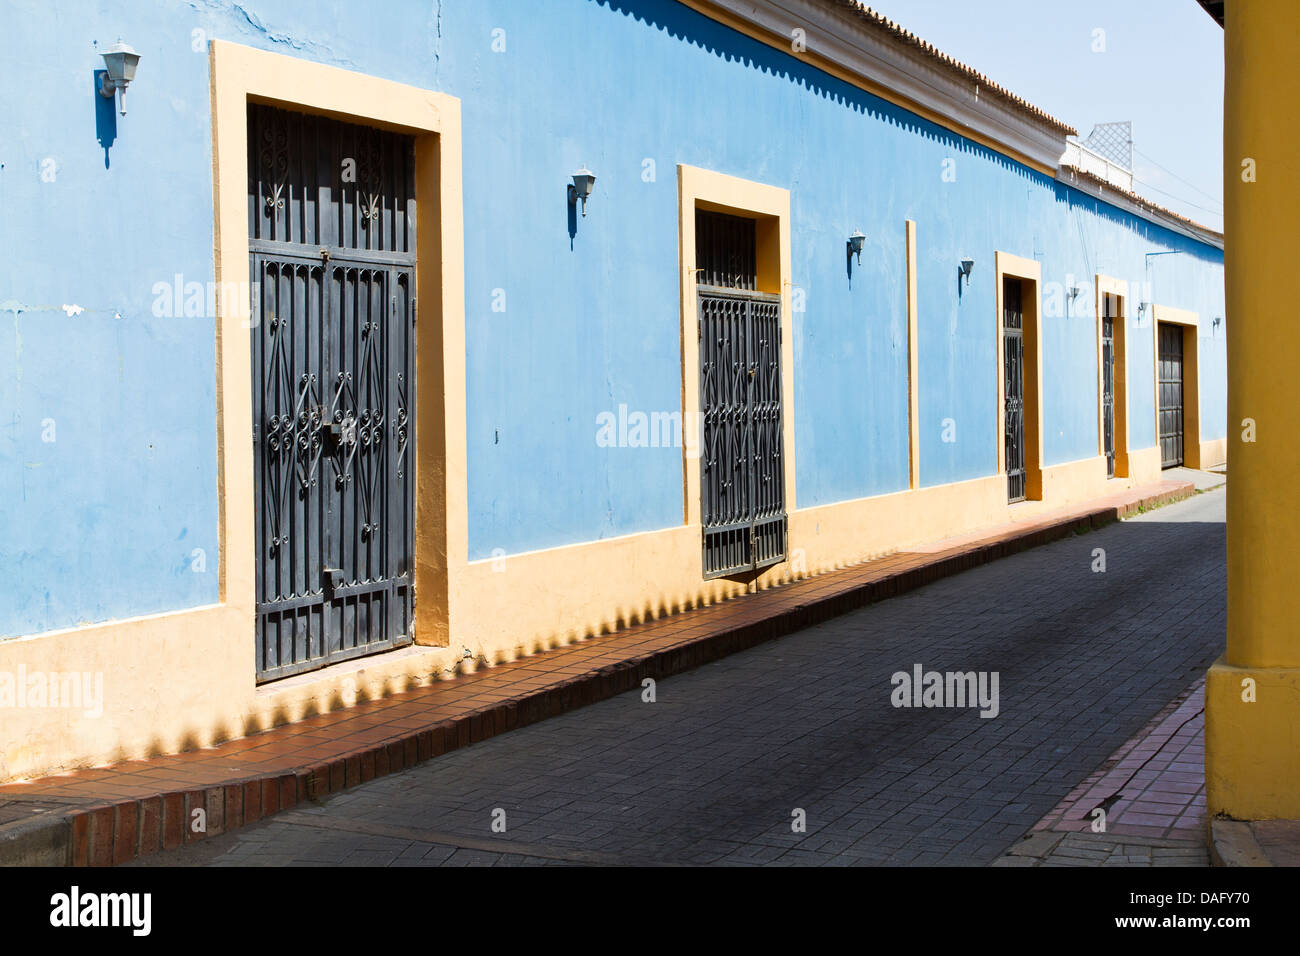 Street in historic center of Coro, Venezuela. - Stock Image